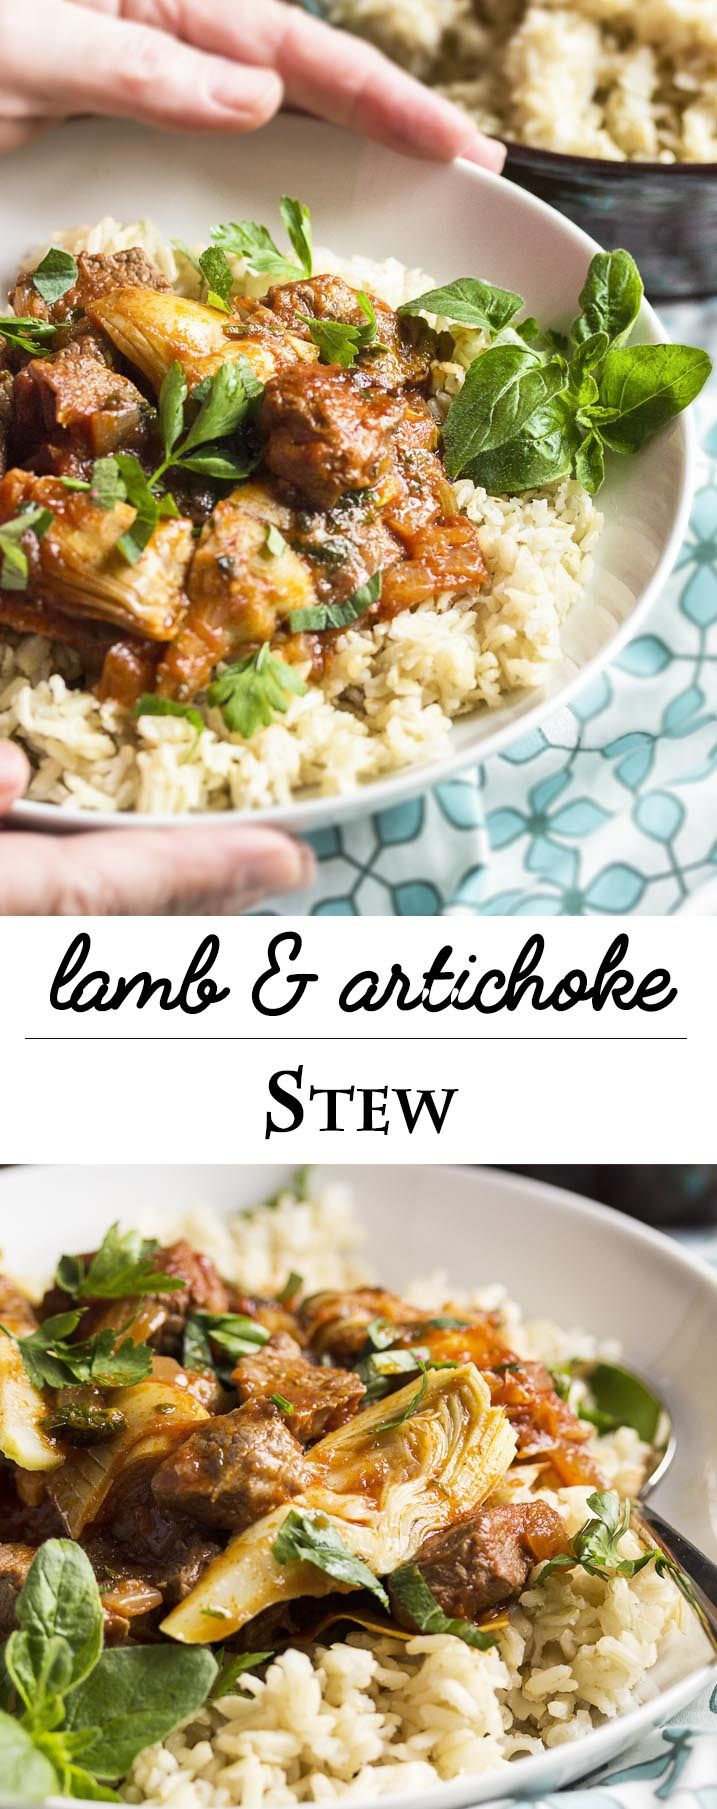 Lamb and Artichoke Stew - I love this Greek inspired spring stew full of lean lamb, artichokes, tomatoes, and plenty of fresh oregano. Serve it over rice or with some crusty bread to soak up the sauce.   justalittlebitofbacon.com